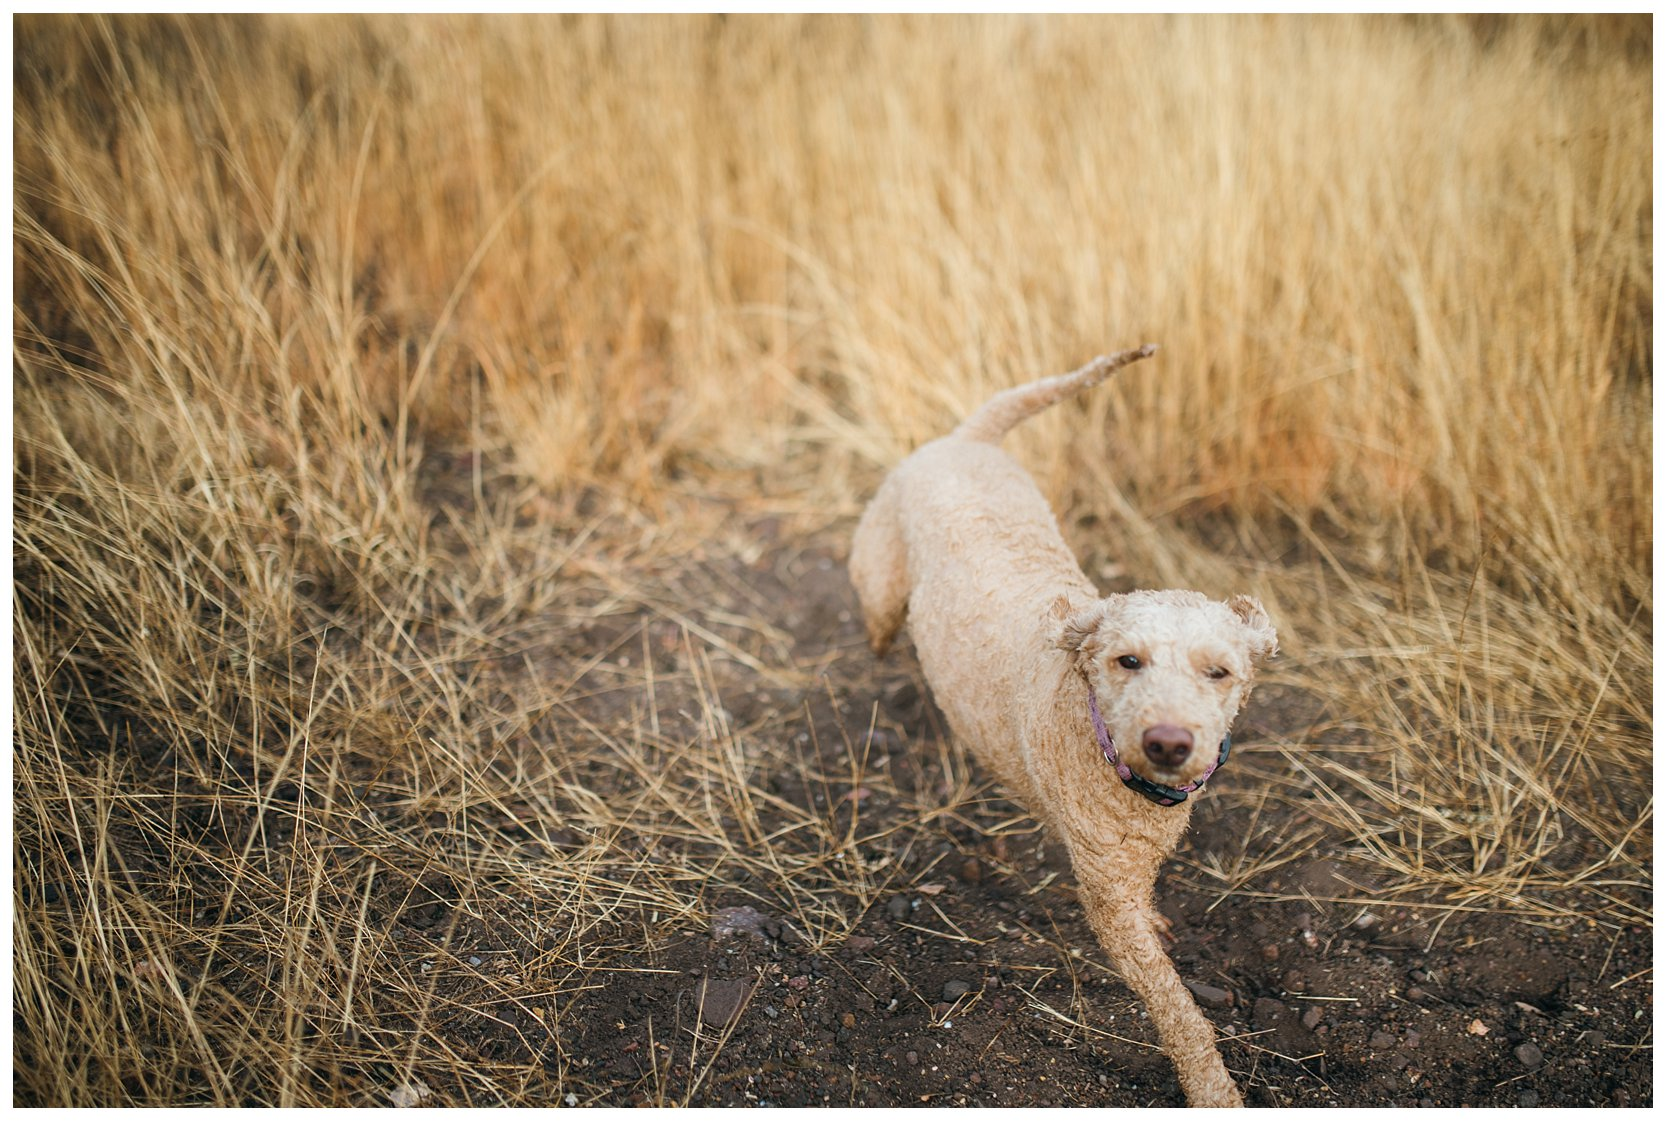 Golden doodle running around in the tall grass